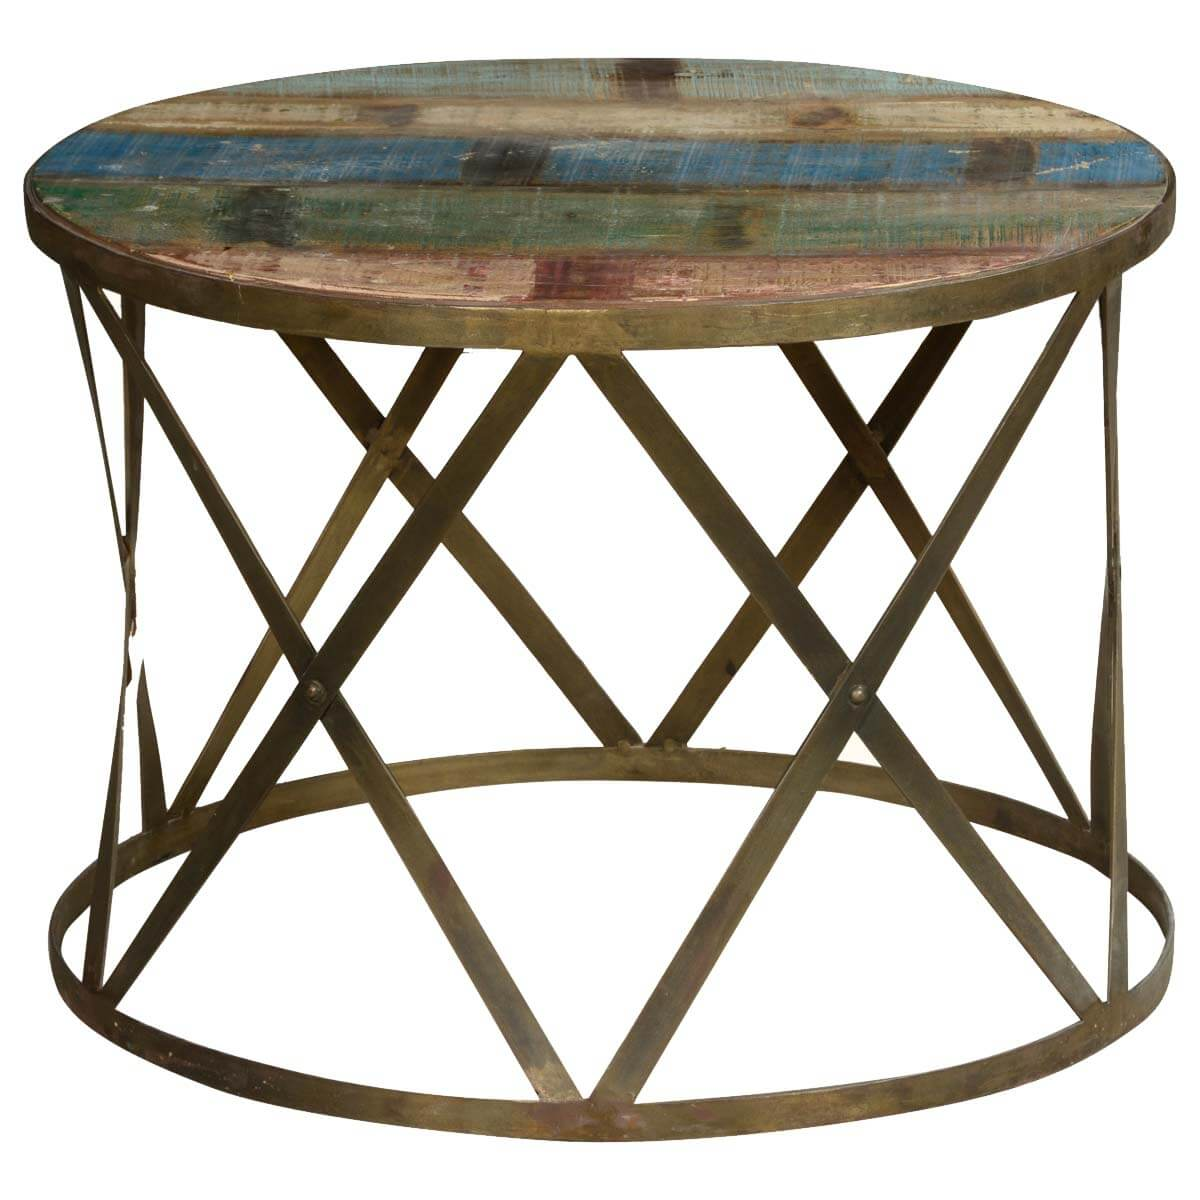 Large Coffee Table Industrial Style: Retro Style Solid Wood And Iron Round Industrial Coffee Table